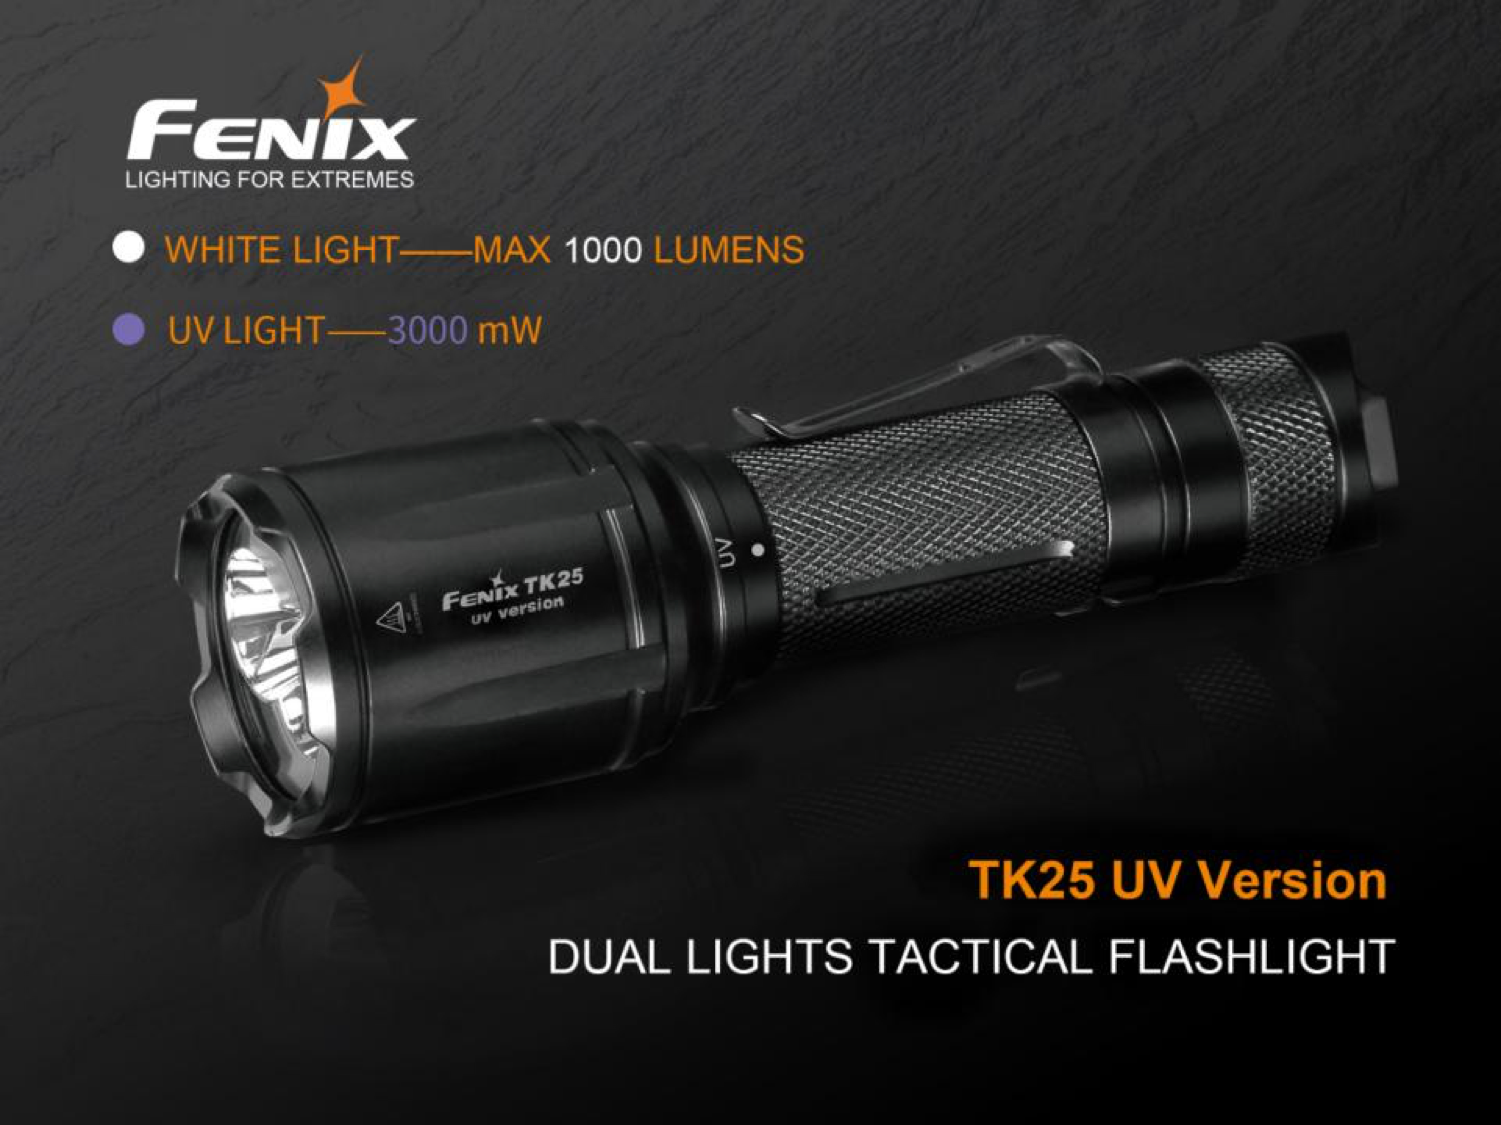 Fenix TK25UV LED Flashlight, UV Torch in India, White + Ultra Violet LEDs, Specially designed for Law enforcement policing department, One switch operation tactical LED Flashlight in India, Powerful LED Torch